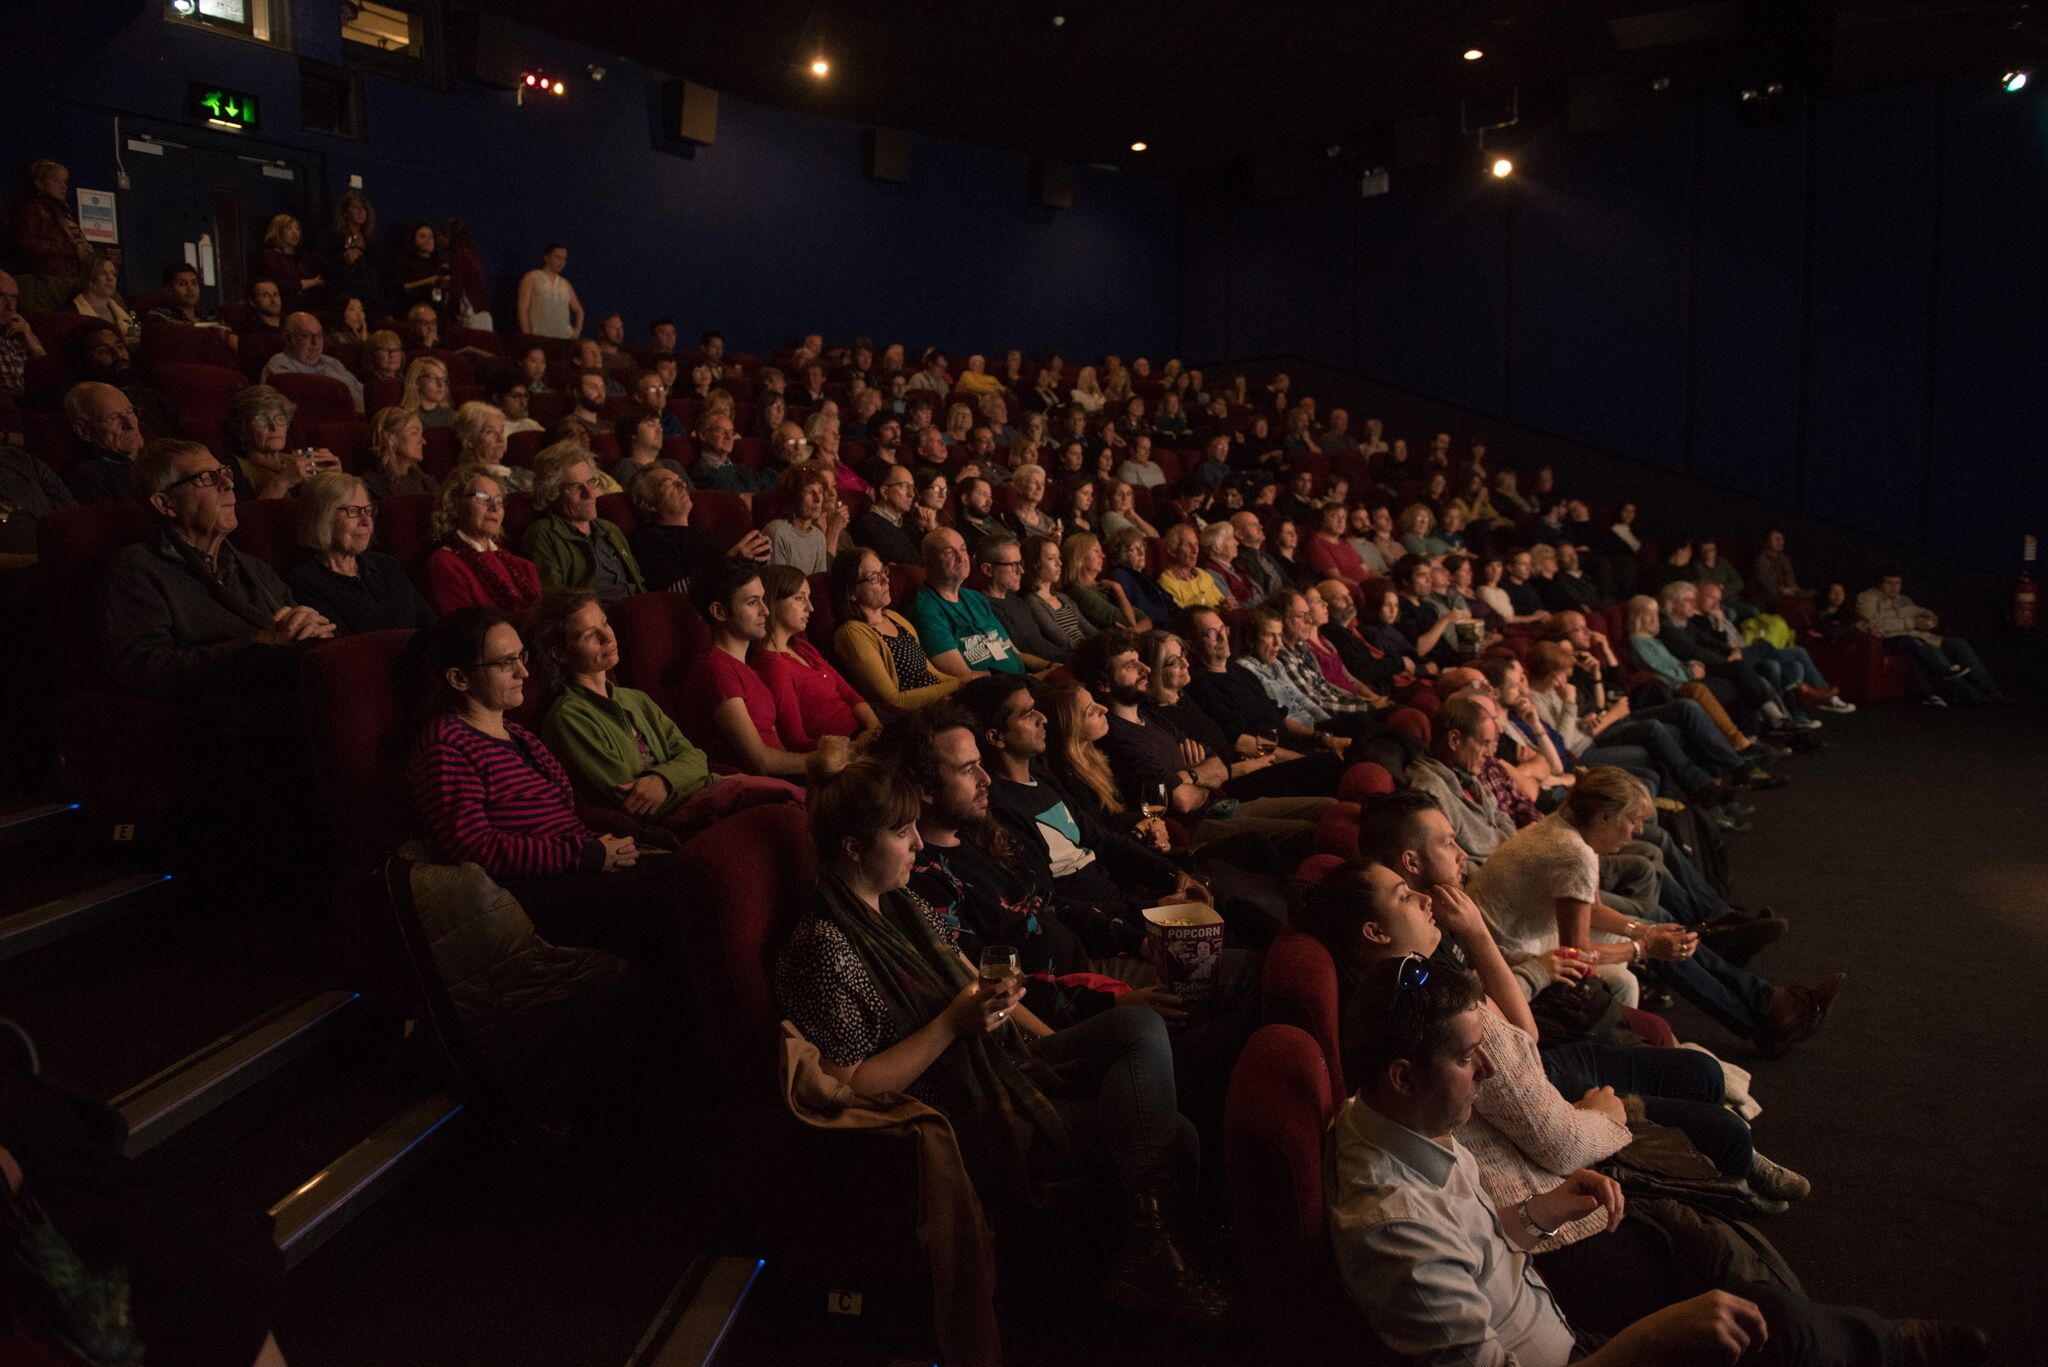 Audience members at the Cambridge Film Festival.